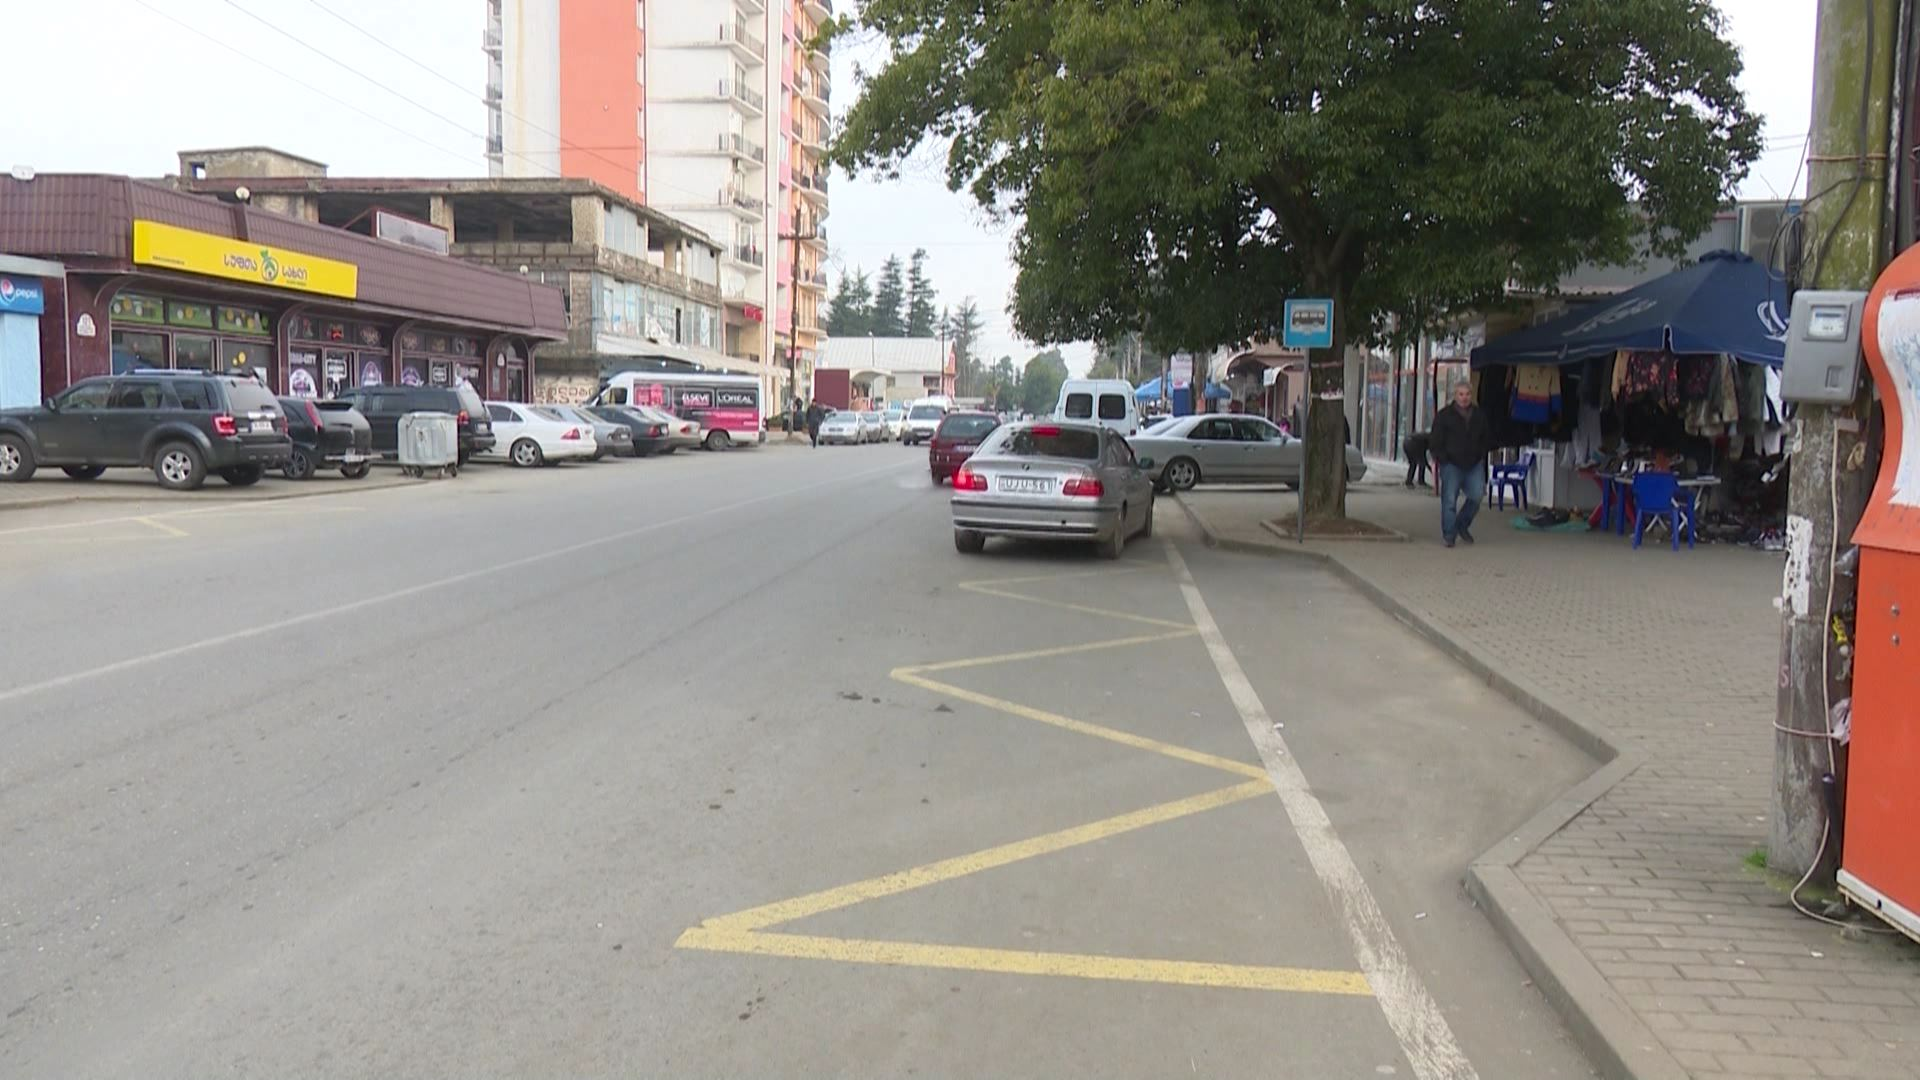 In Kobuleti, citizens are demanding placement of bus stop on Rustaveli Street